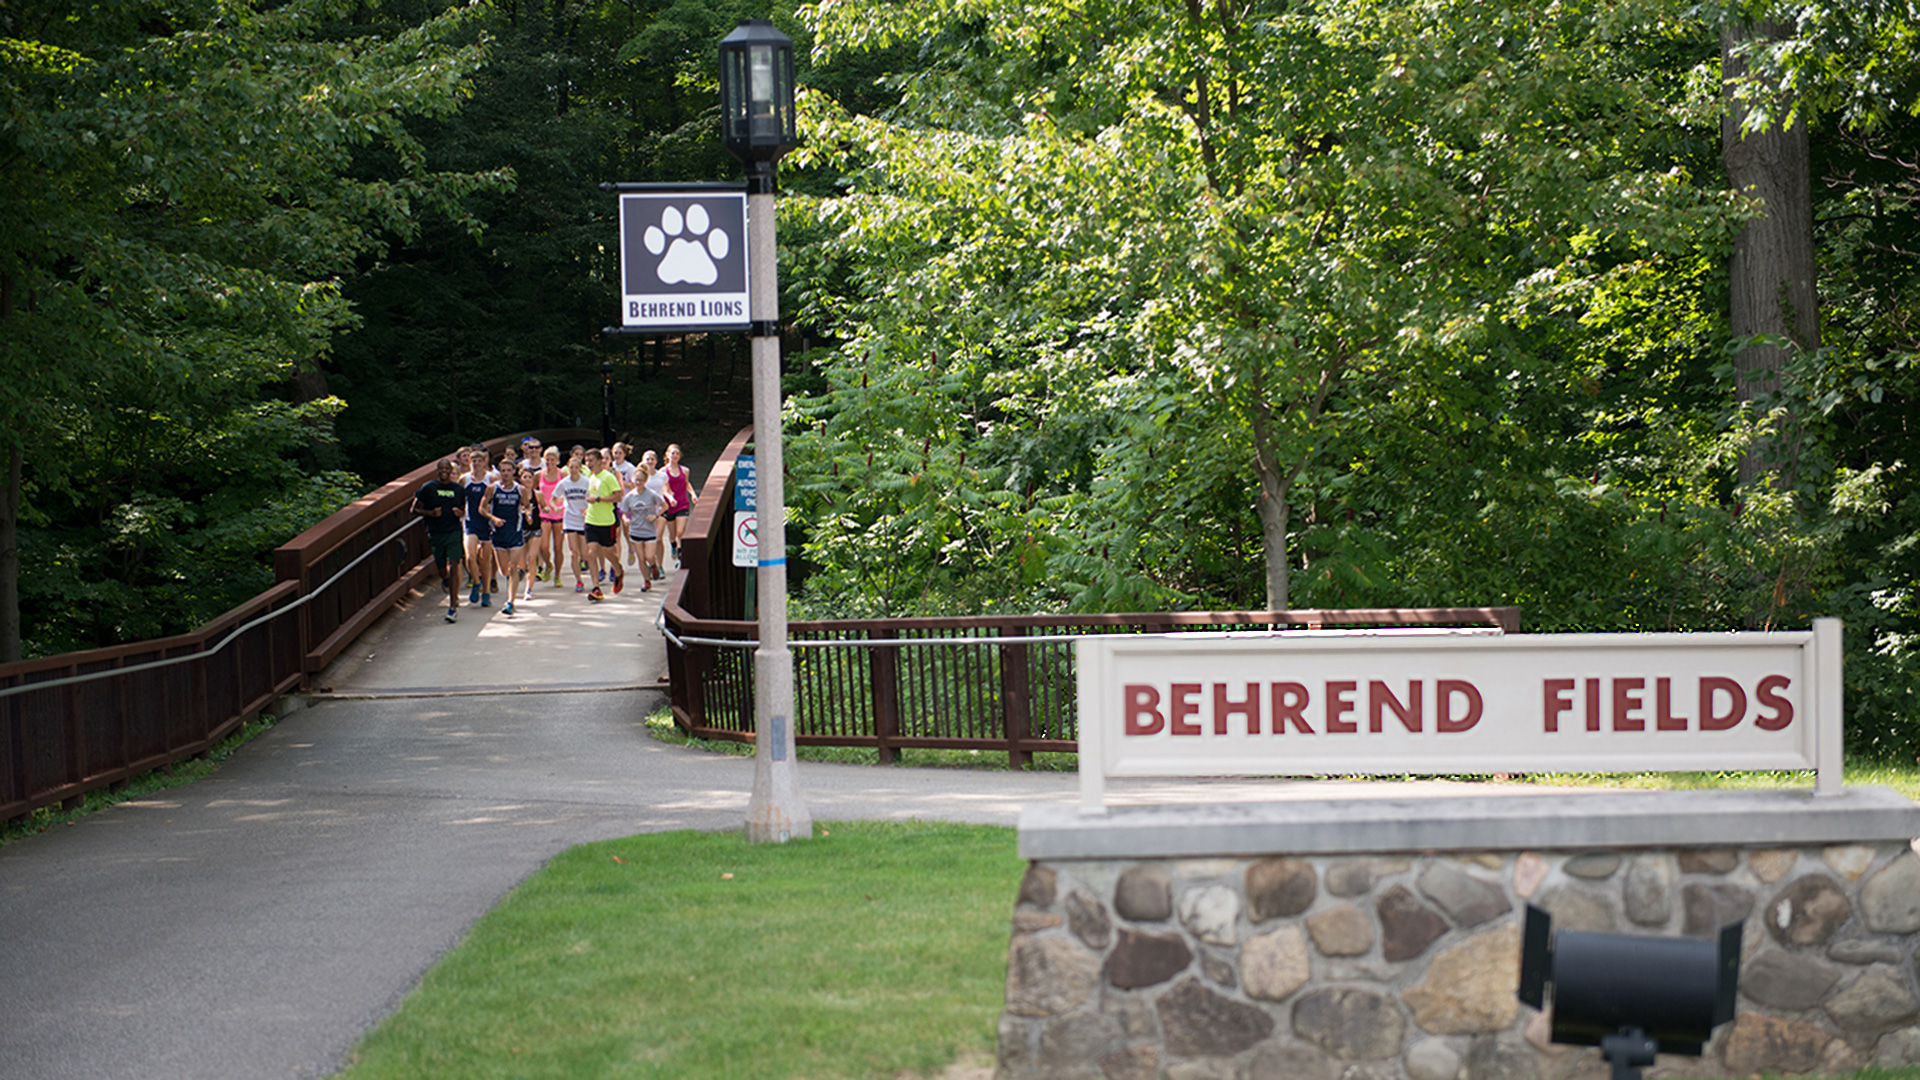 Sign for and path to Behrend Fields